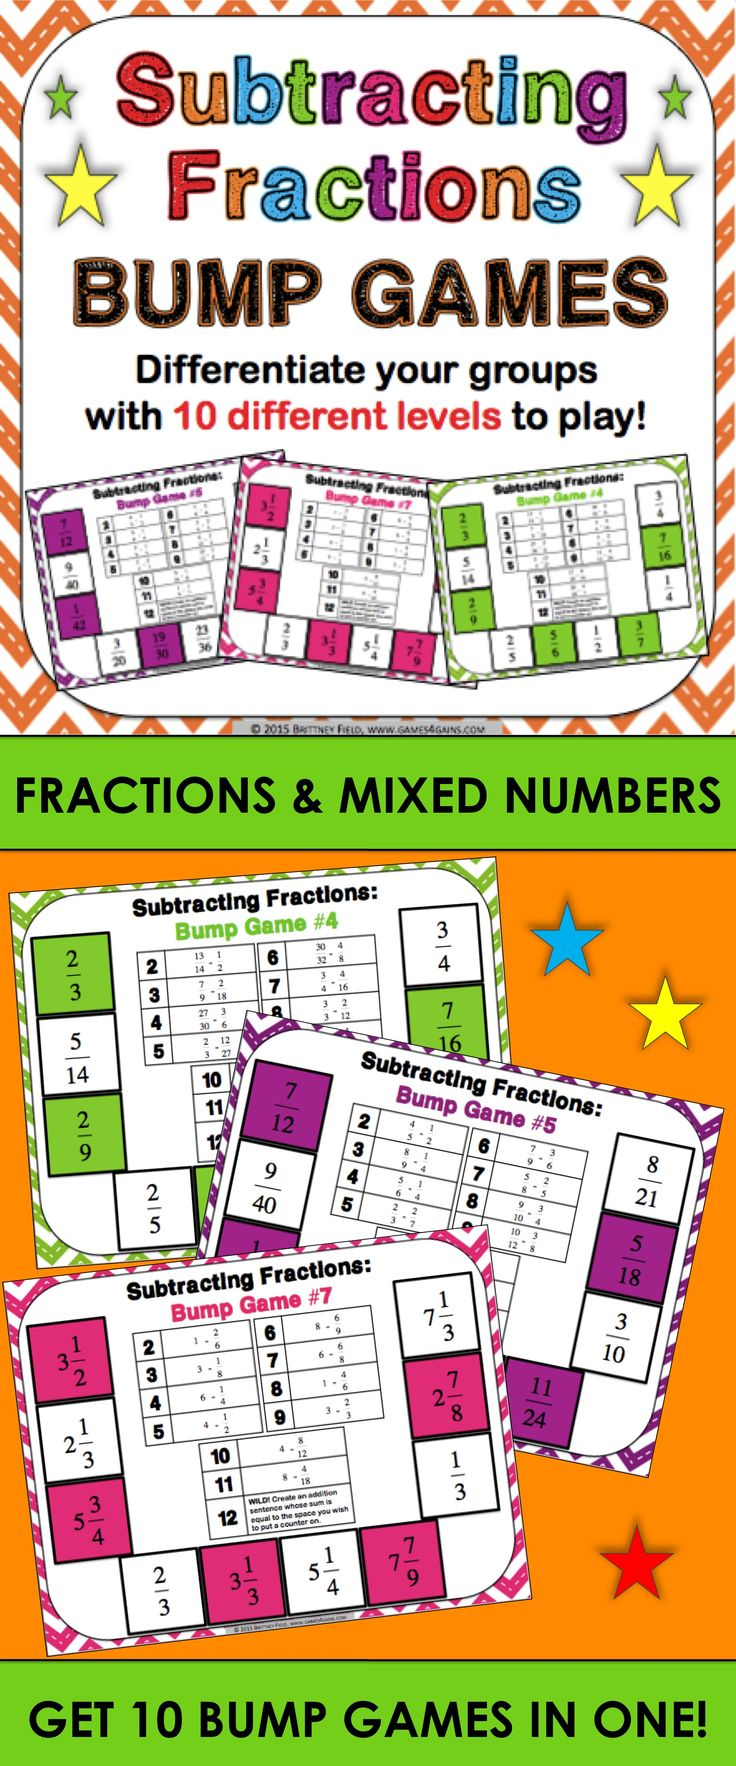 Subtracting Fractions Bump Games contains 10 different games to help students practice subtracting fractions and mixed numbers with like and unlike denominators. As students work through the games, each one ramps up in difficulty. This means that you can have all of your students working at their appropriate level when using this set!